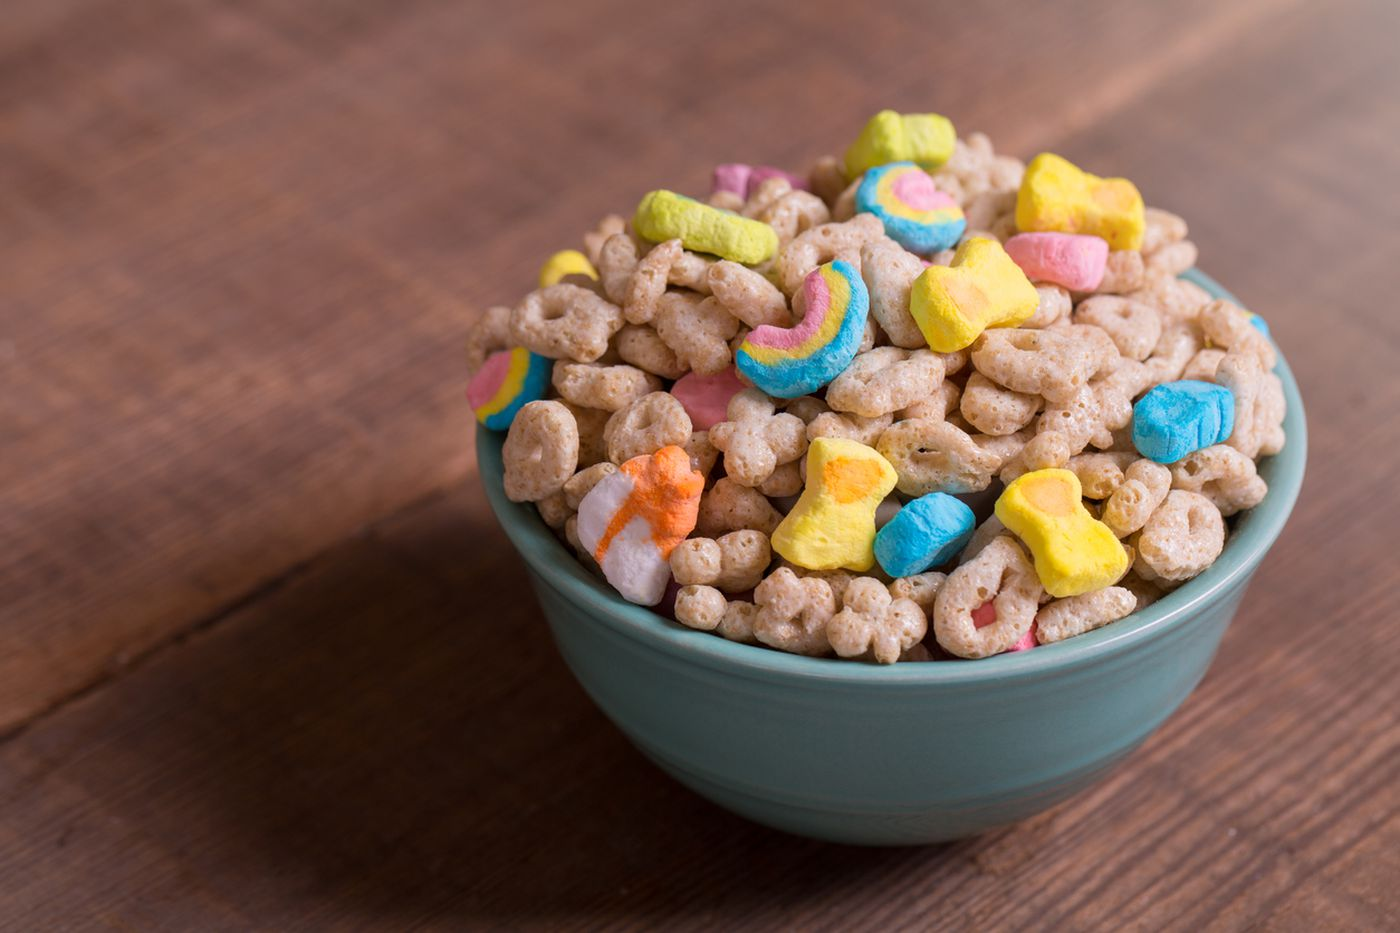 Research shows some food additives may harm children\'s health